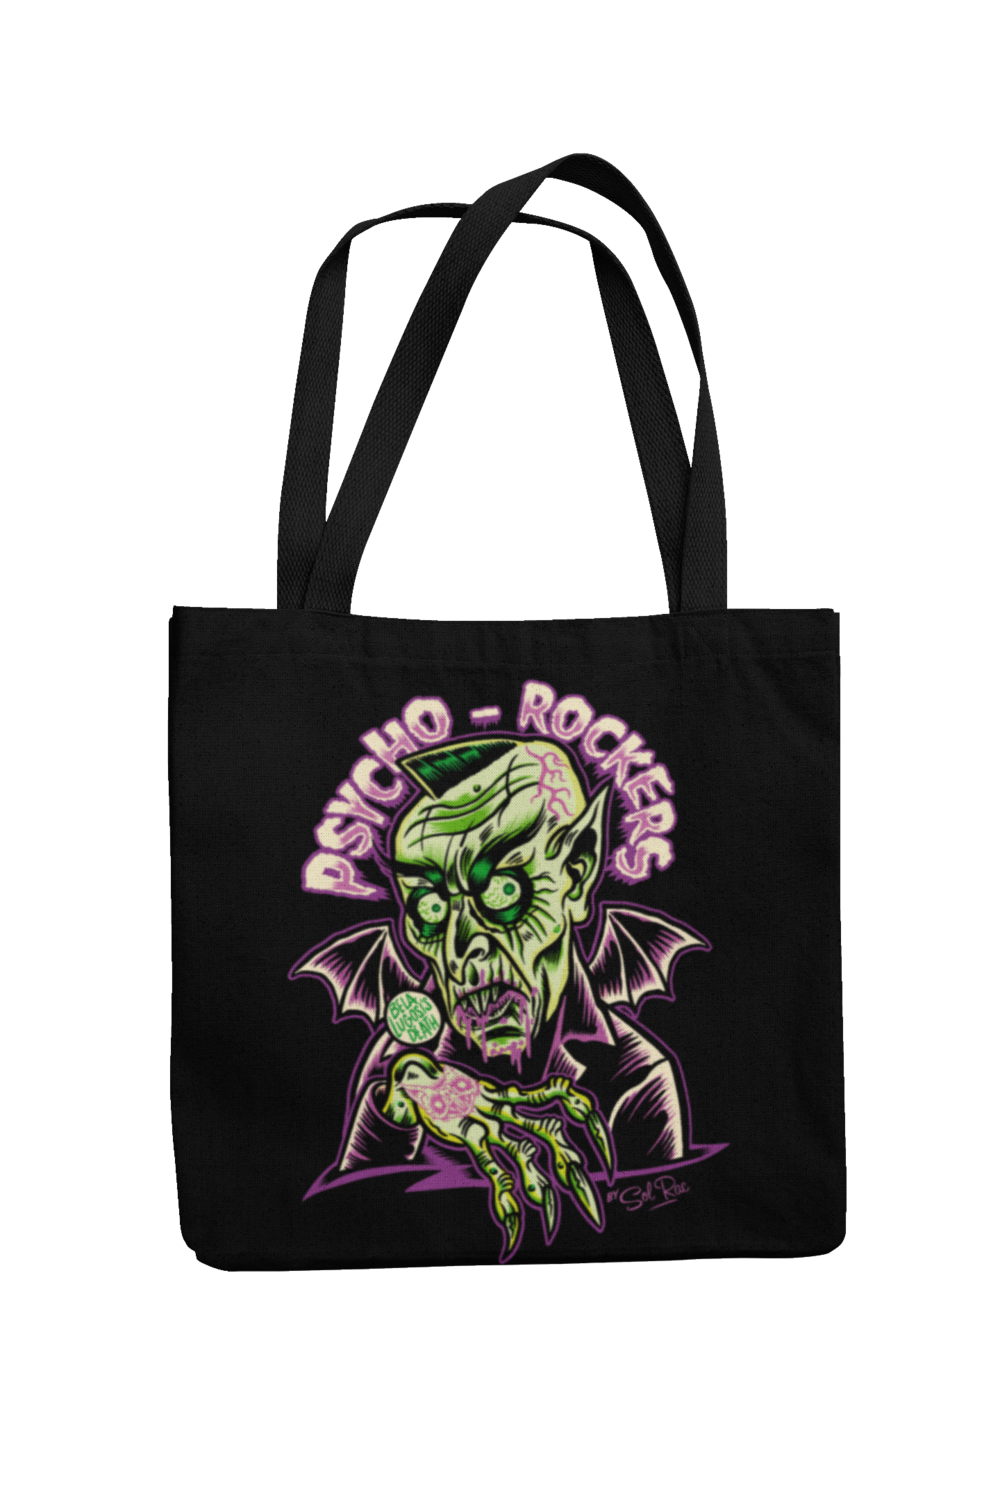 PSYCHO - ROCKERS Cotton Bag  logo design SOL RAC